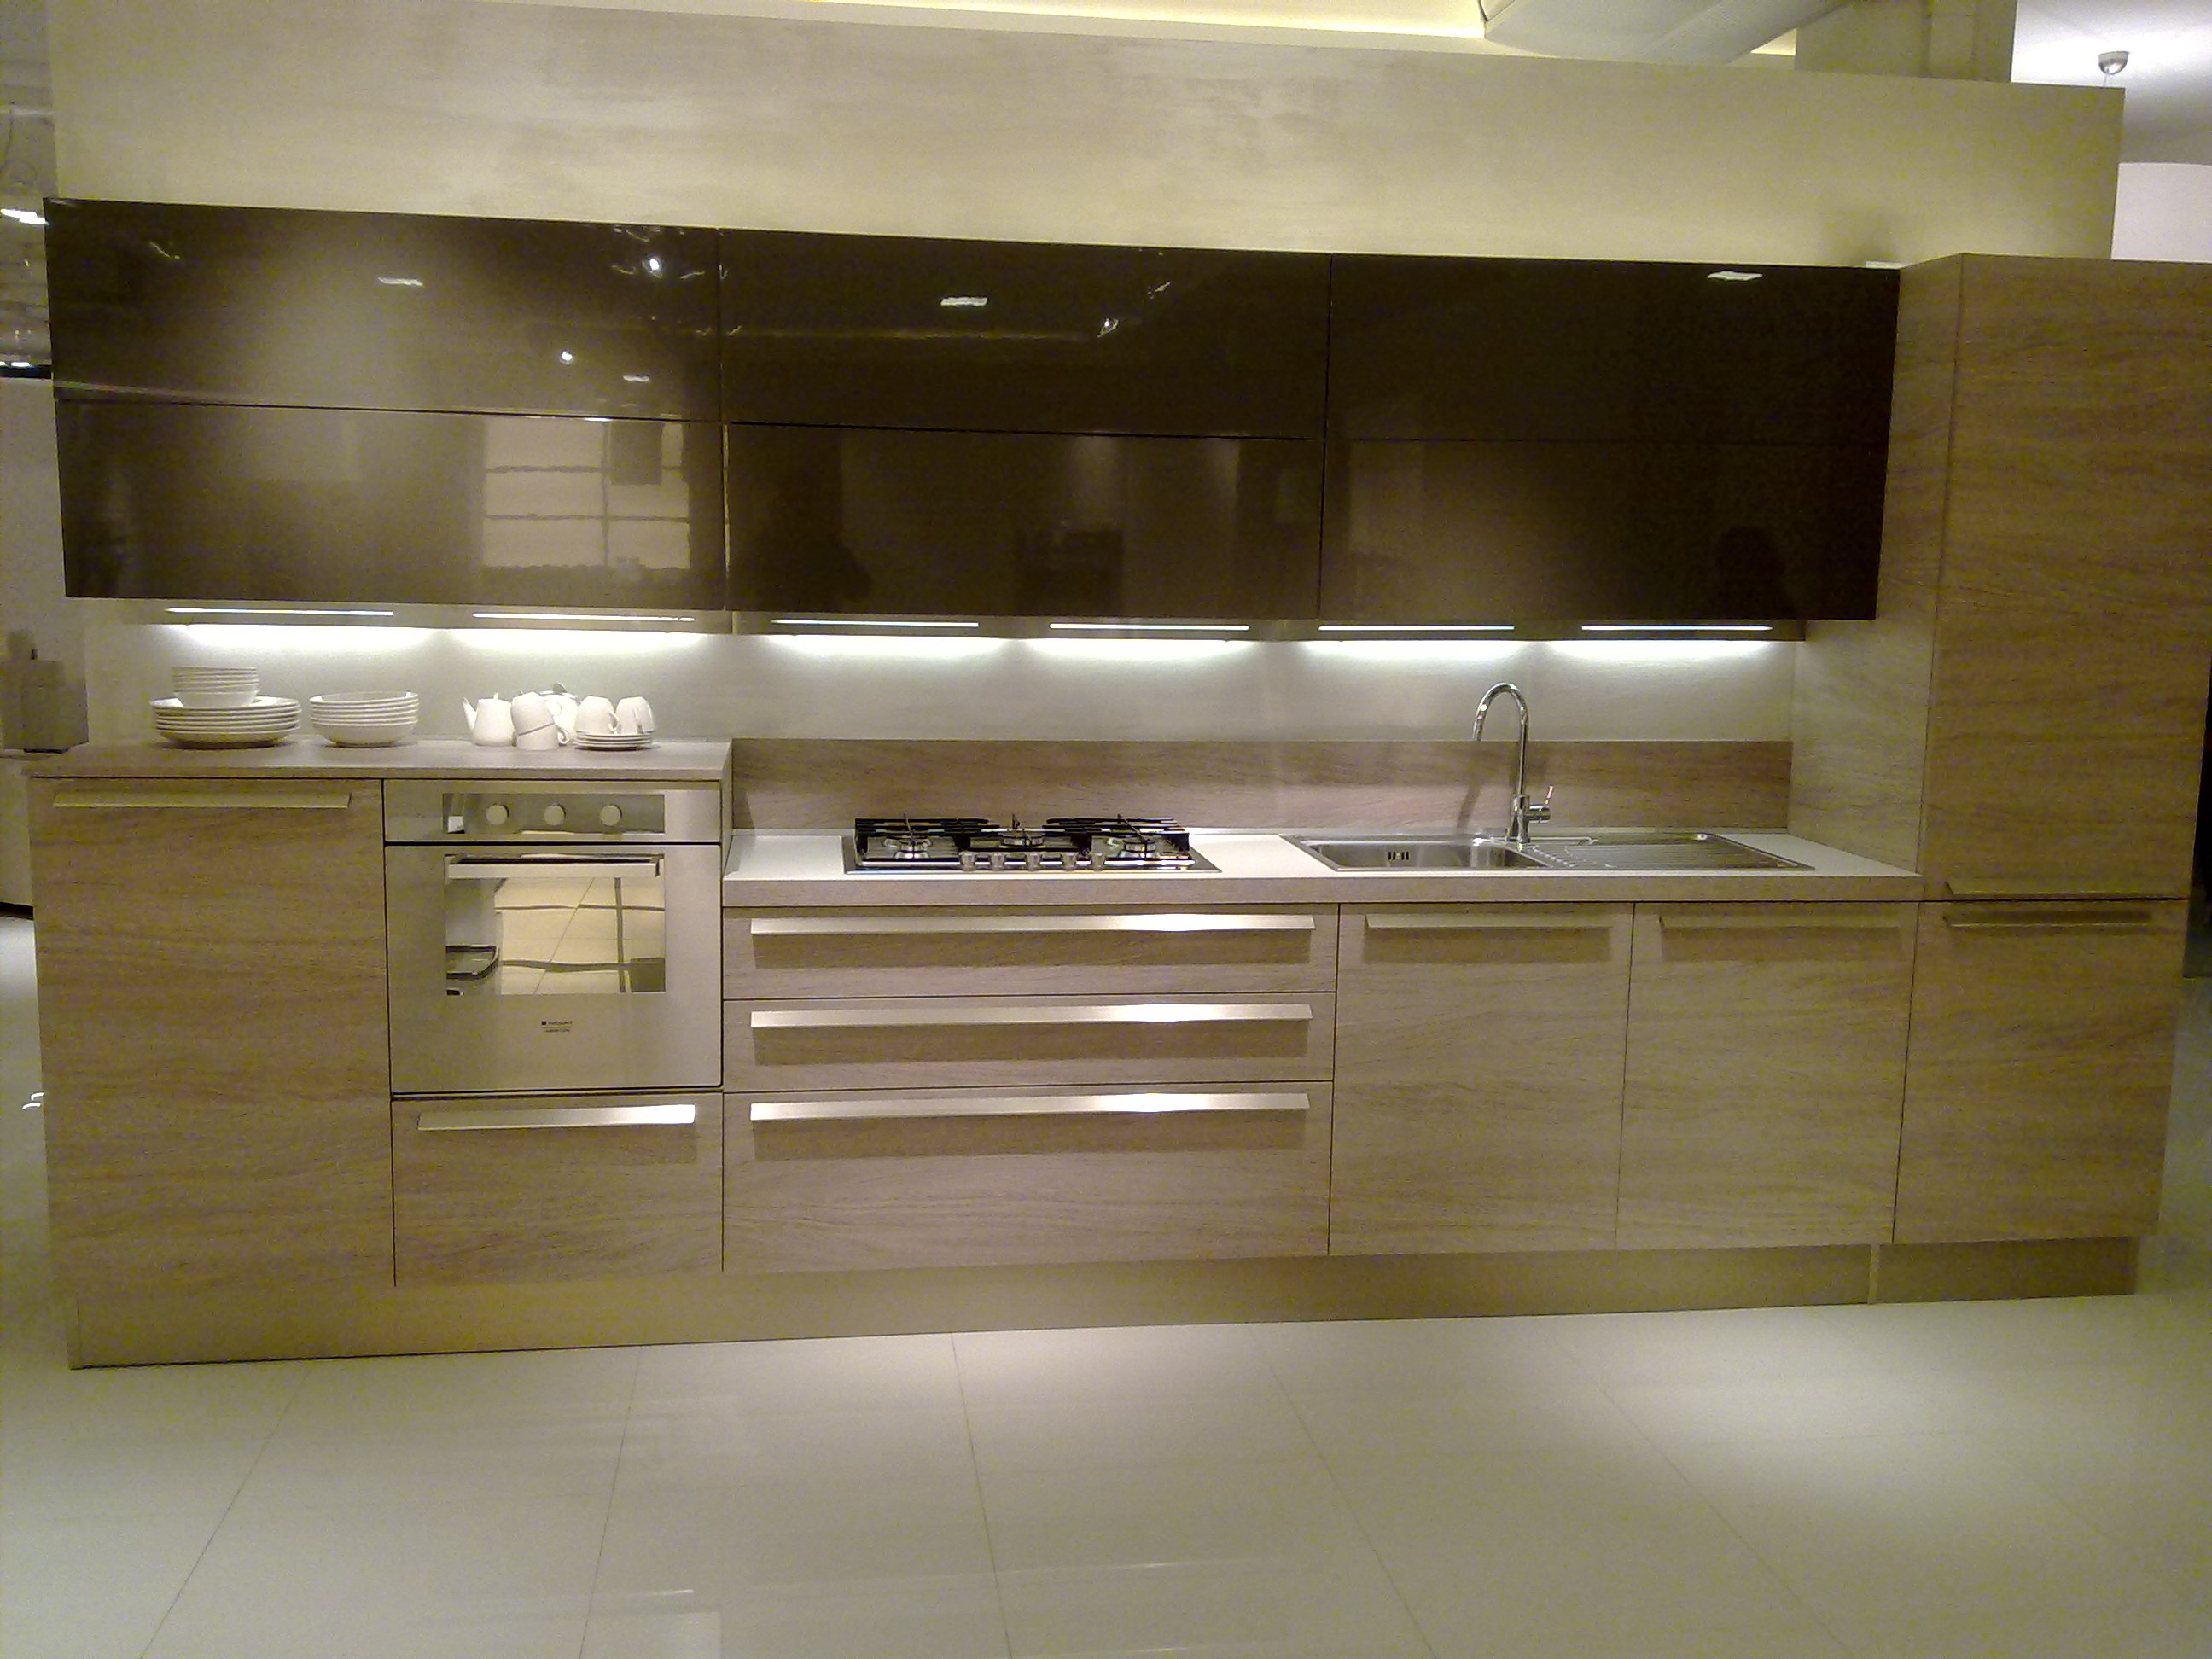 Outlet Cucine Veneto - best outlet cucine toscana gallery, outlet ...